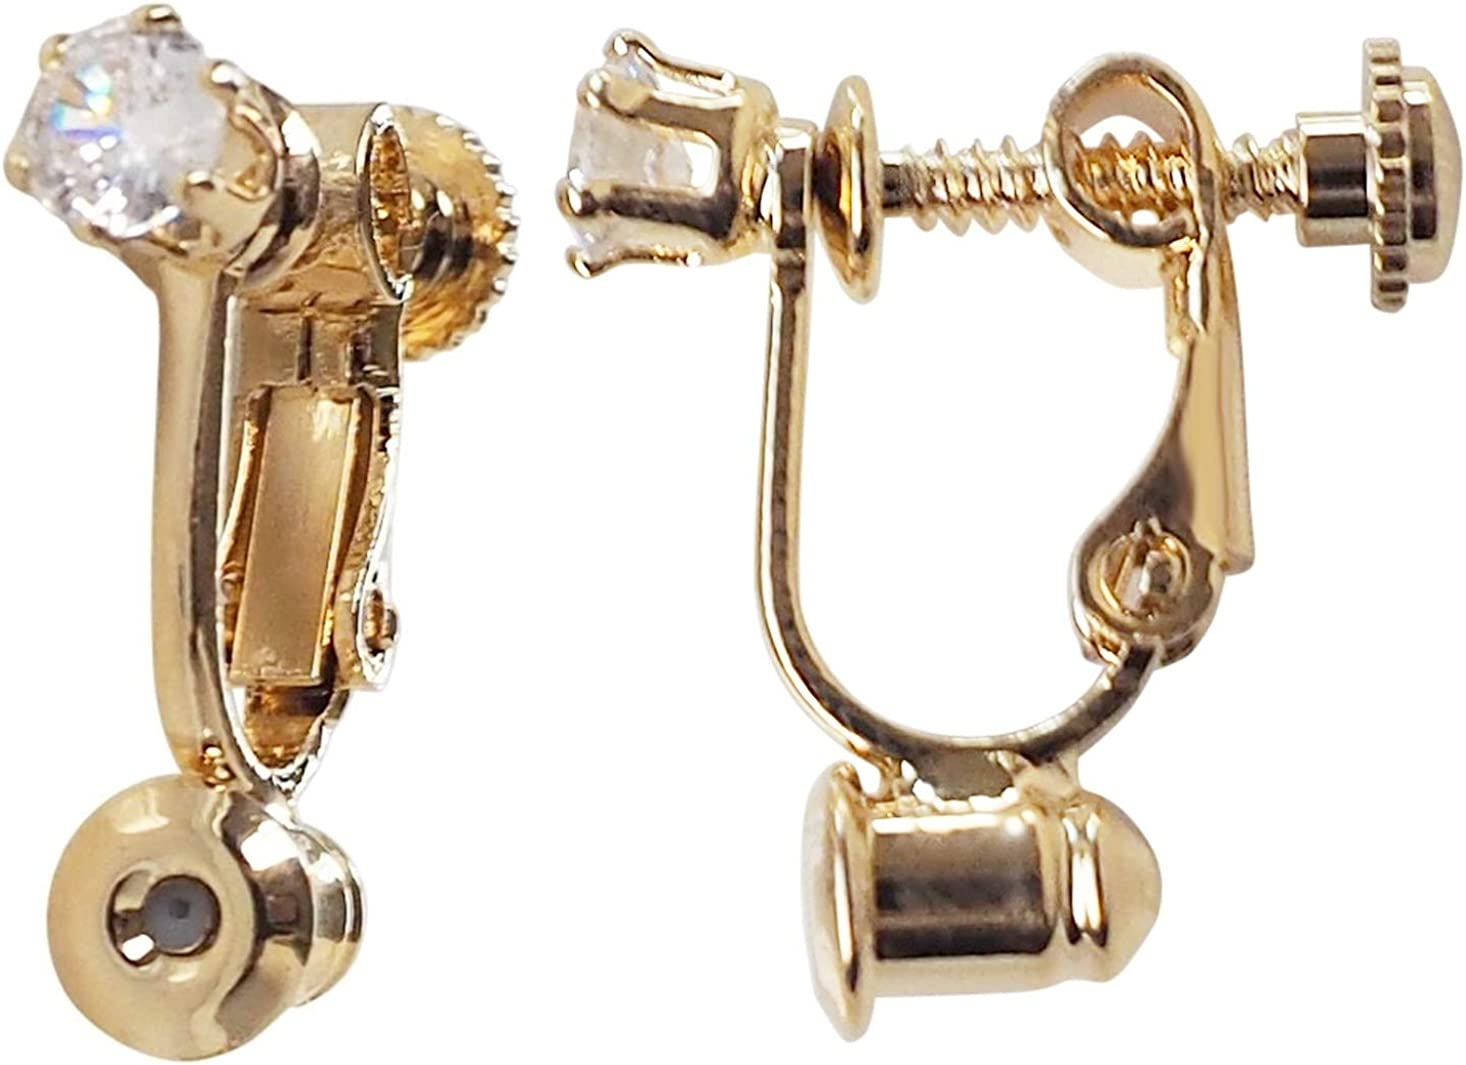 Screw Back Clip On Earrings Converters For Women, Pierced Earrings to Clip-on Non Pierced Earrings Miyabi Grace Gold with Crystal